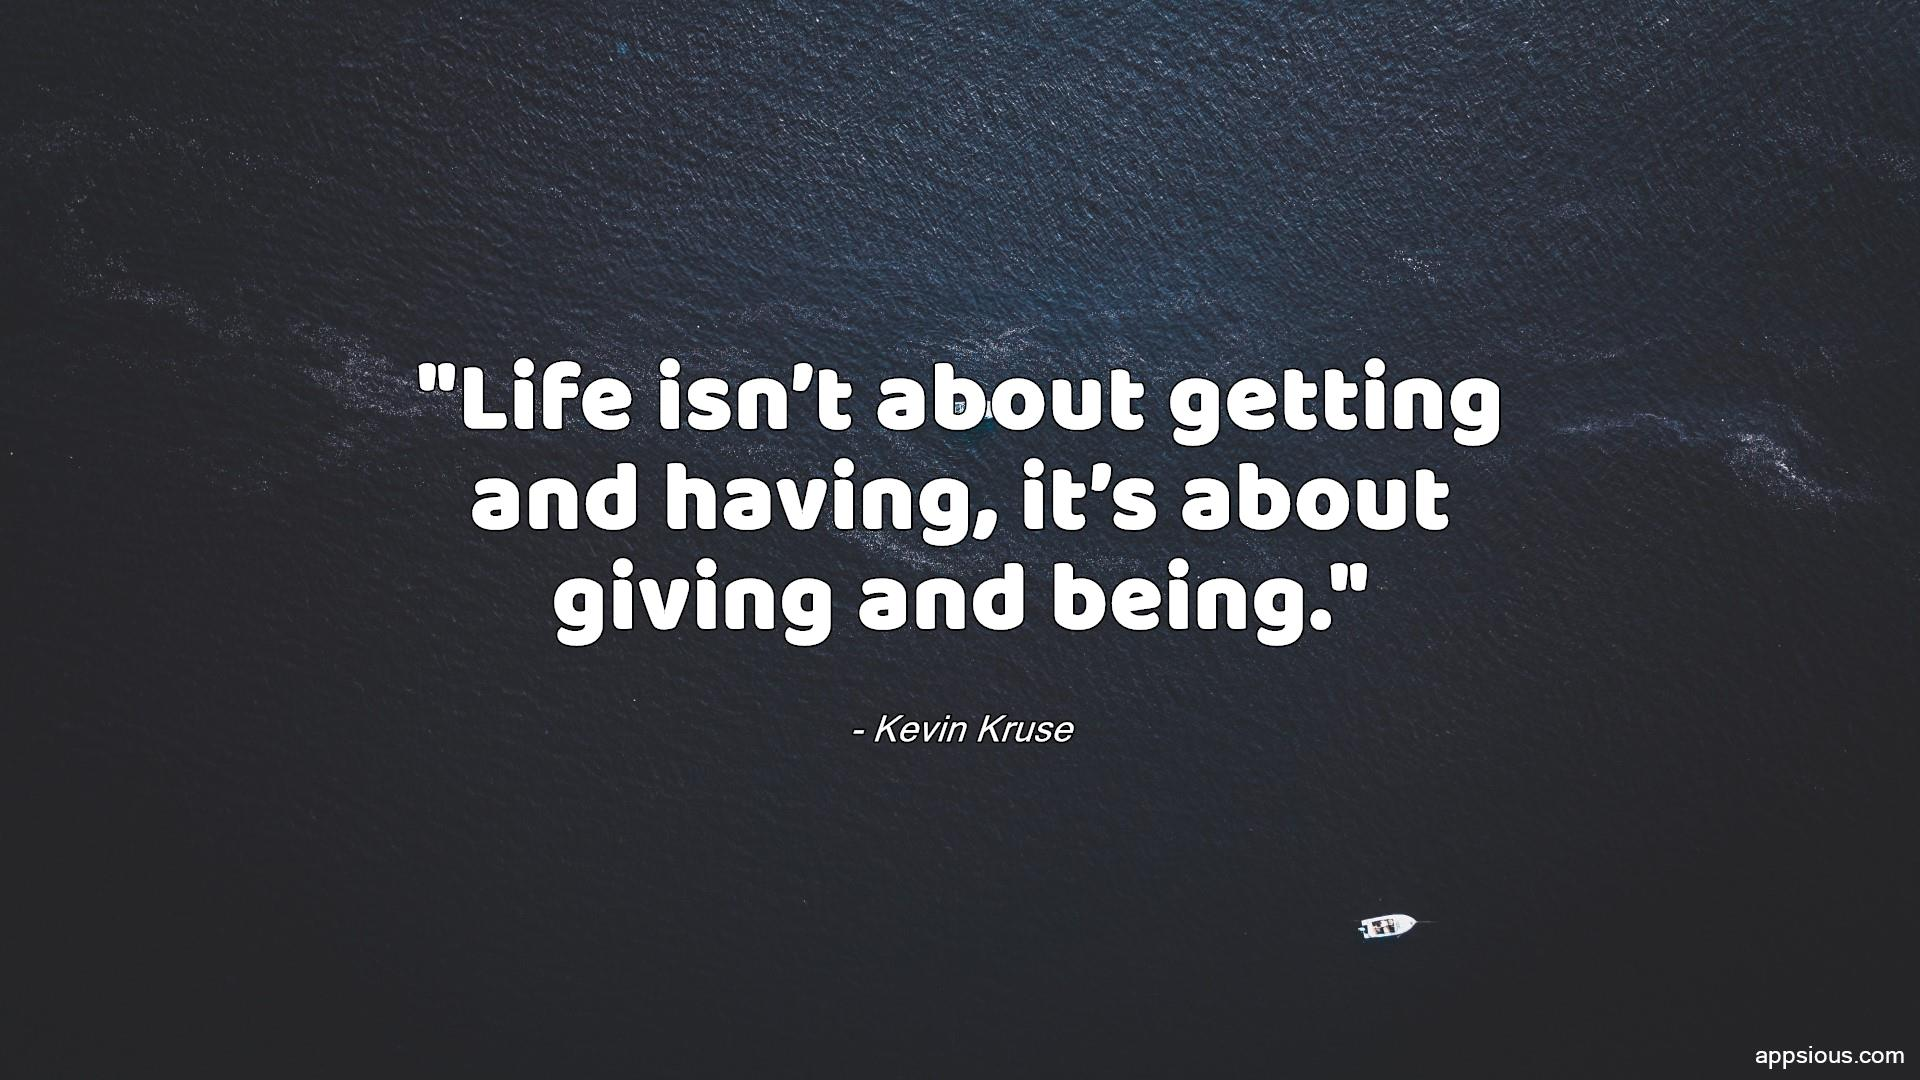 Life isn't about getting and having, it's about giving and being.